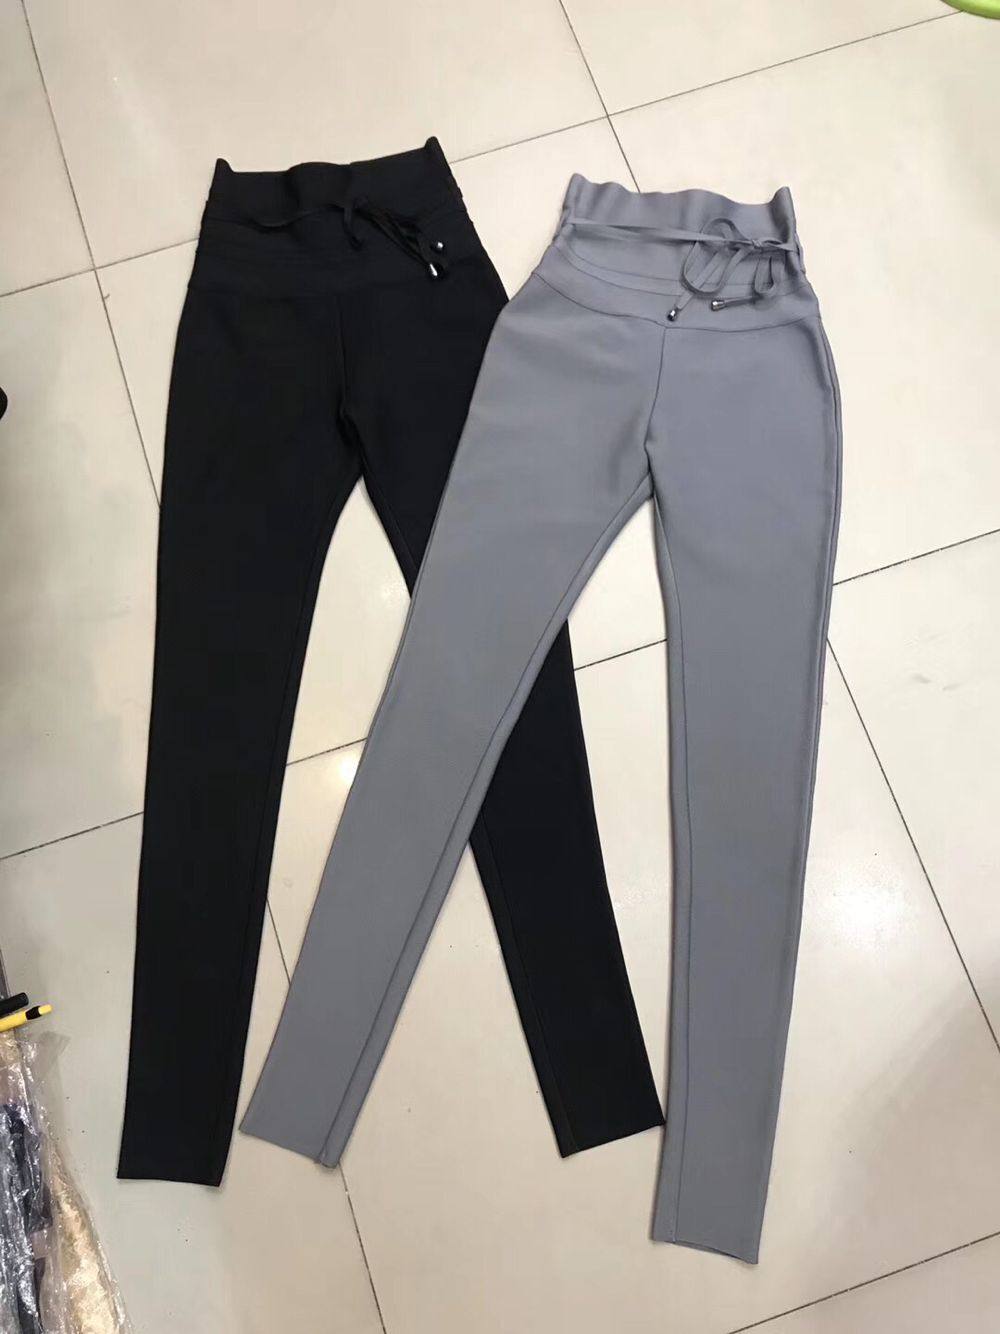 2019 new arrival women factory wholesale dropshipping black grey  bandage pants